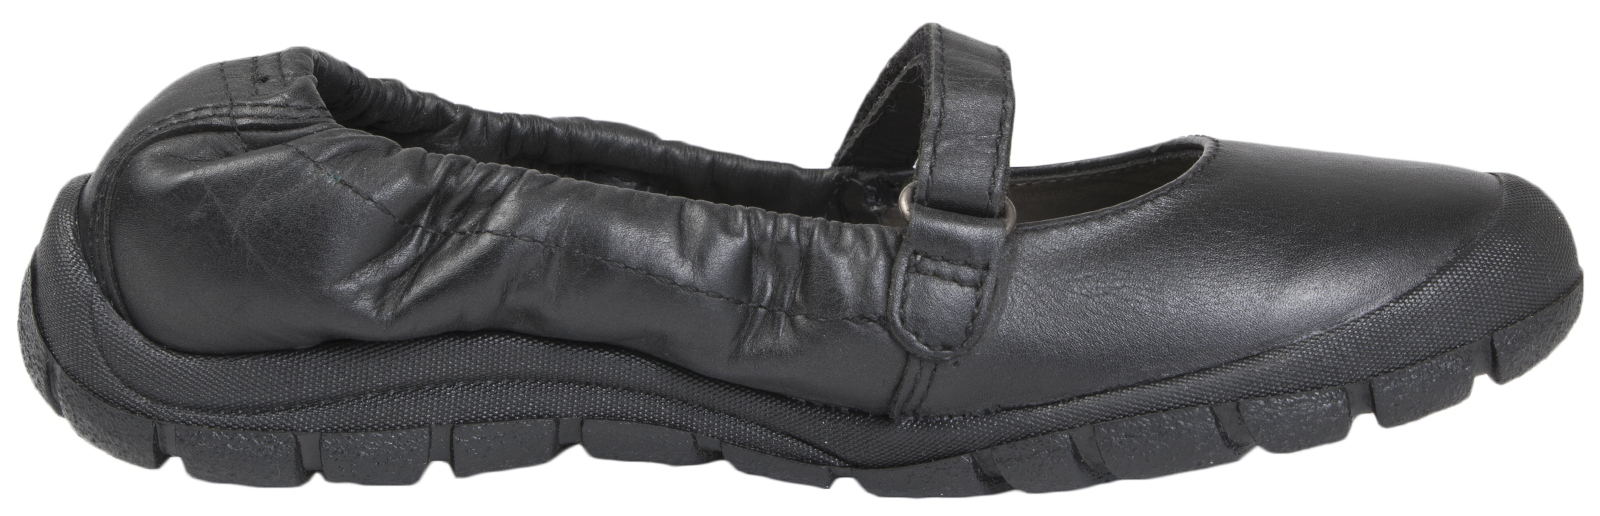 Ricosta Girls Leather Mary Jane Shoes Kids Black School Dolly Ballet Pumps Size